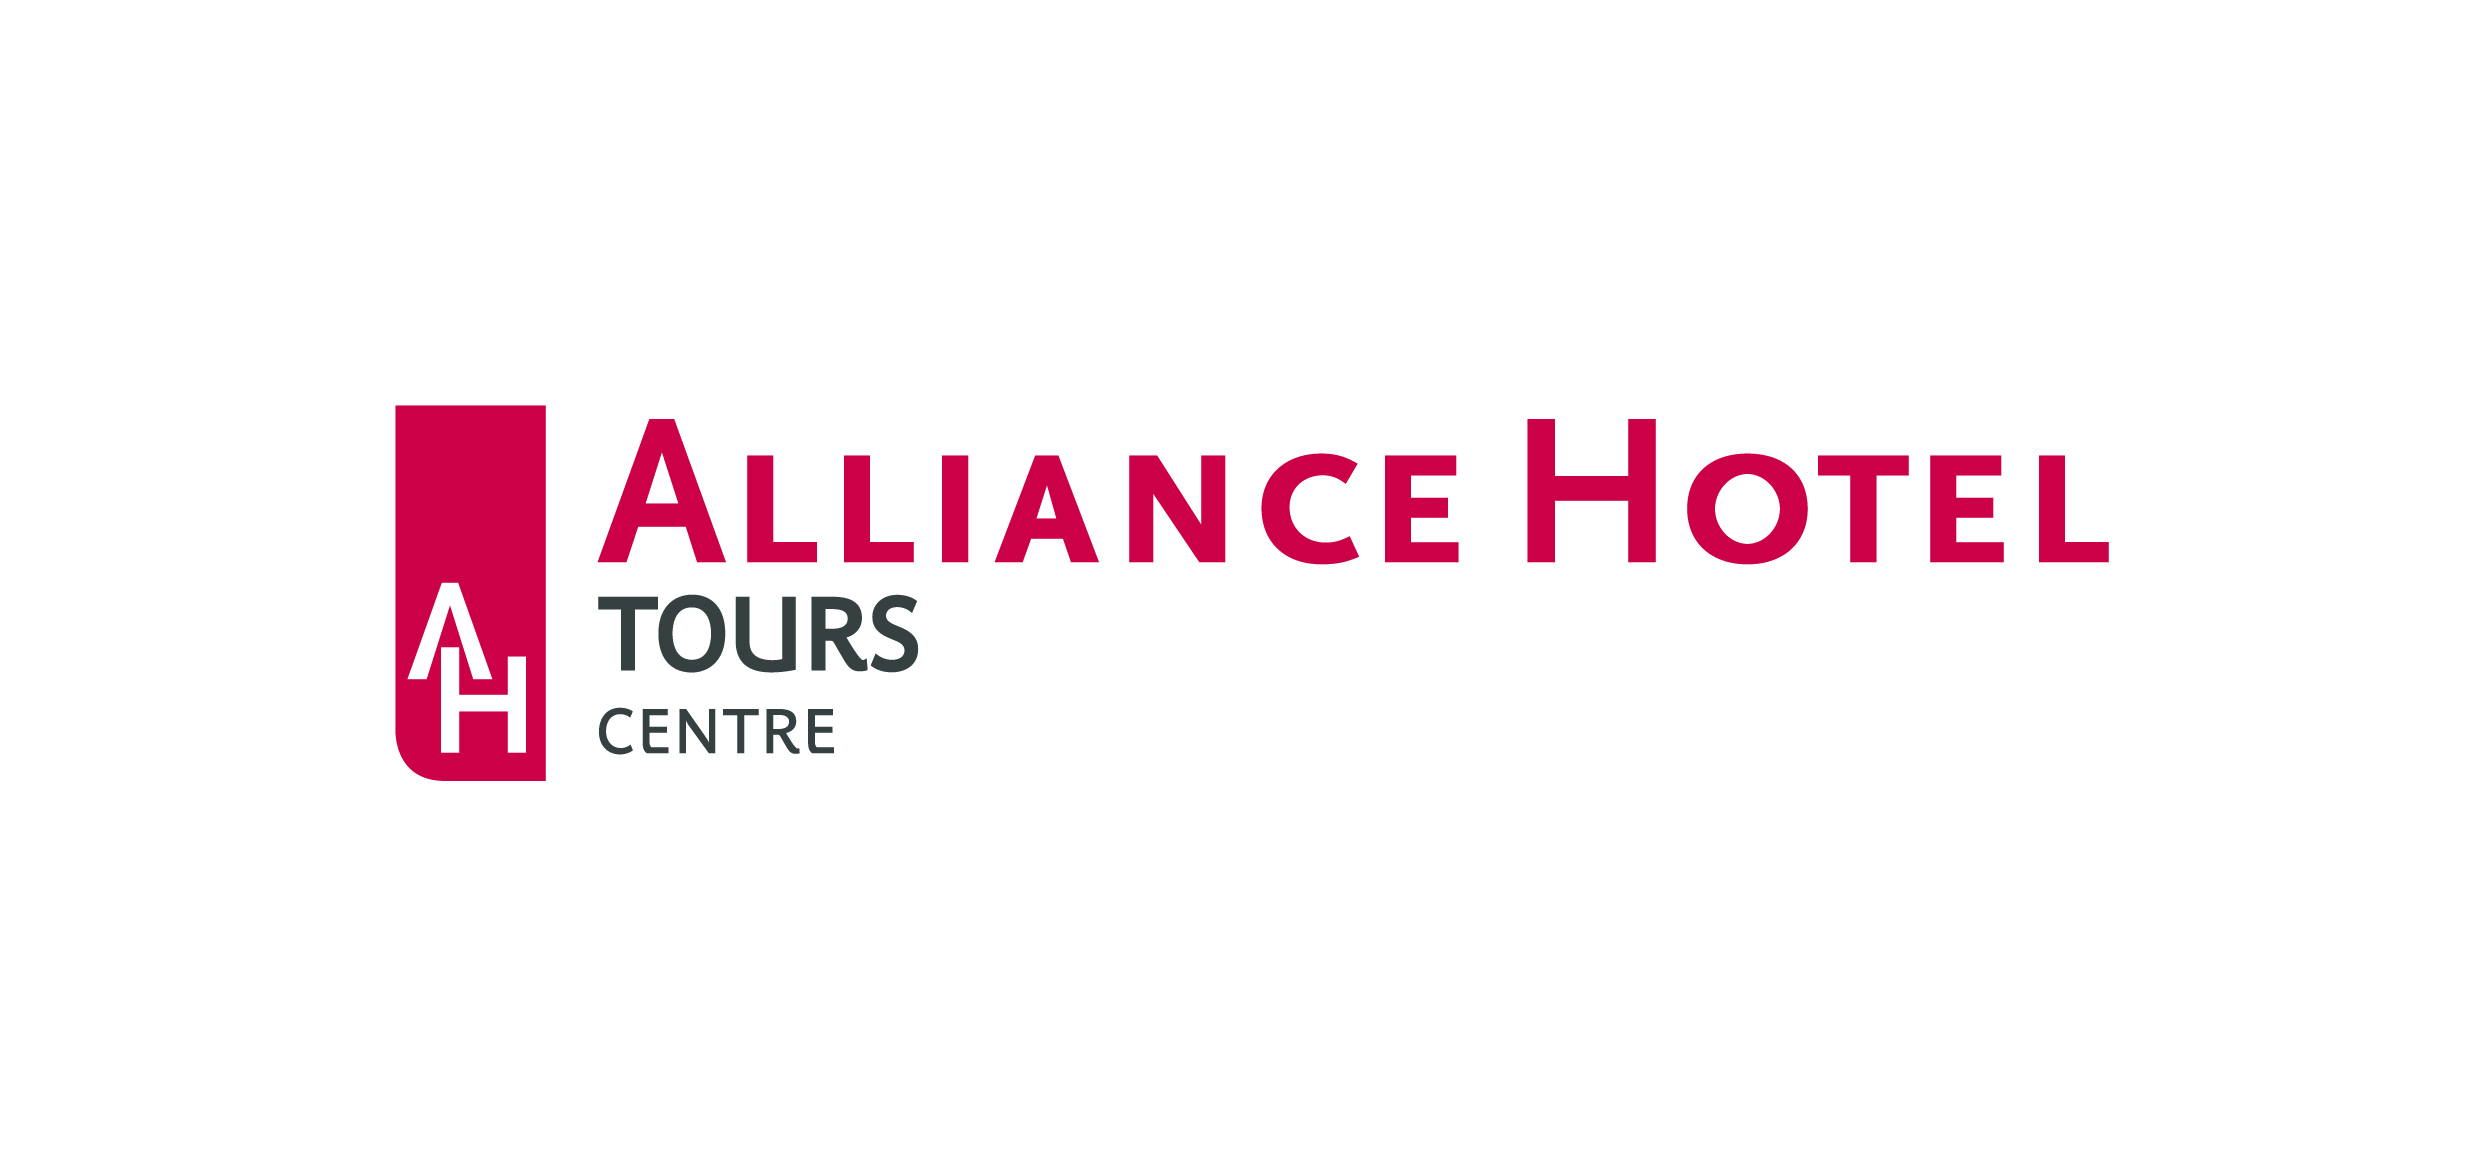 Alliance hôtel